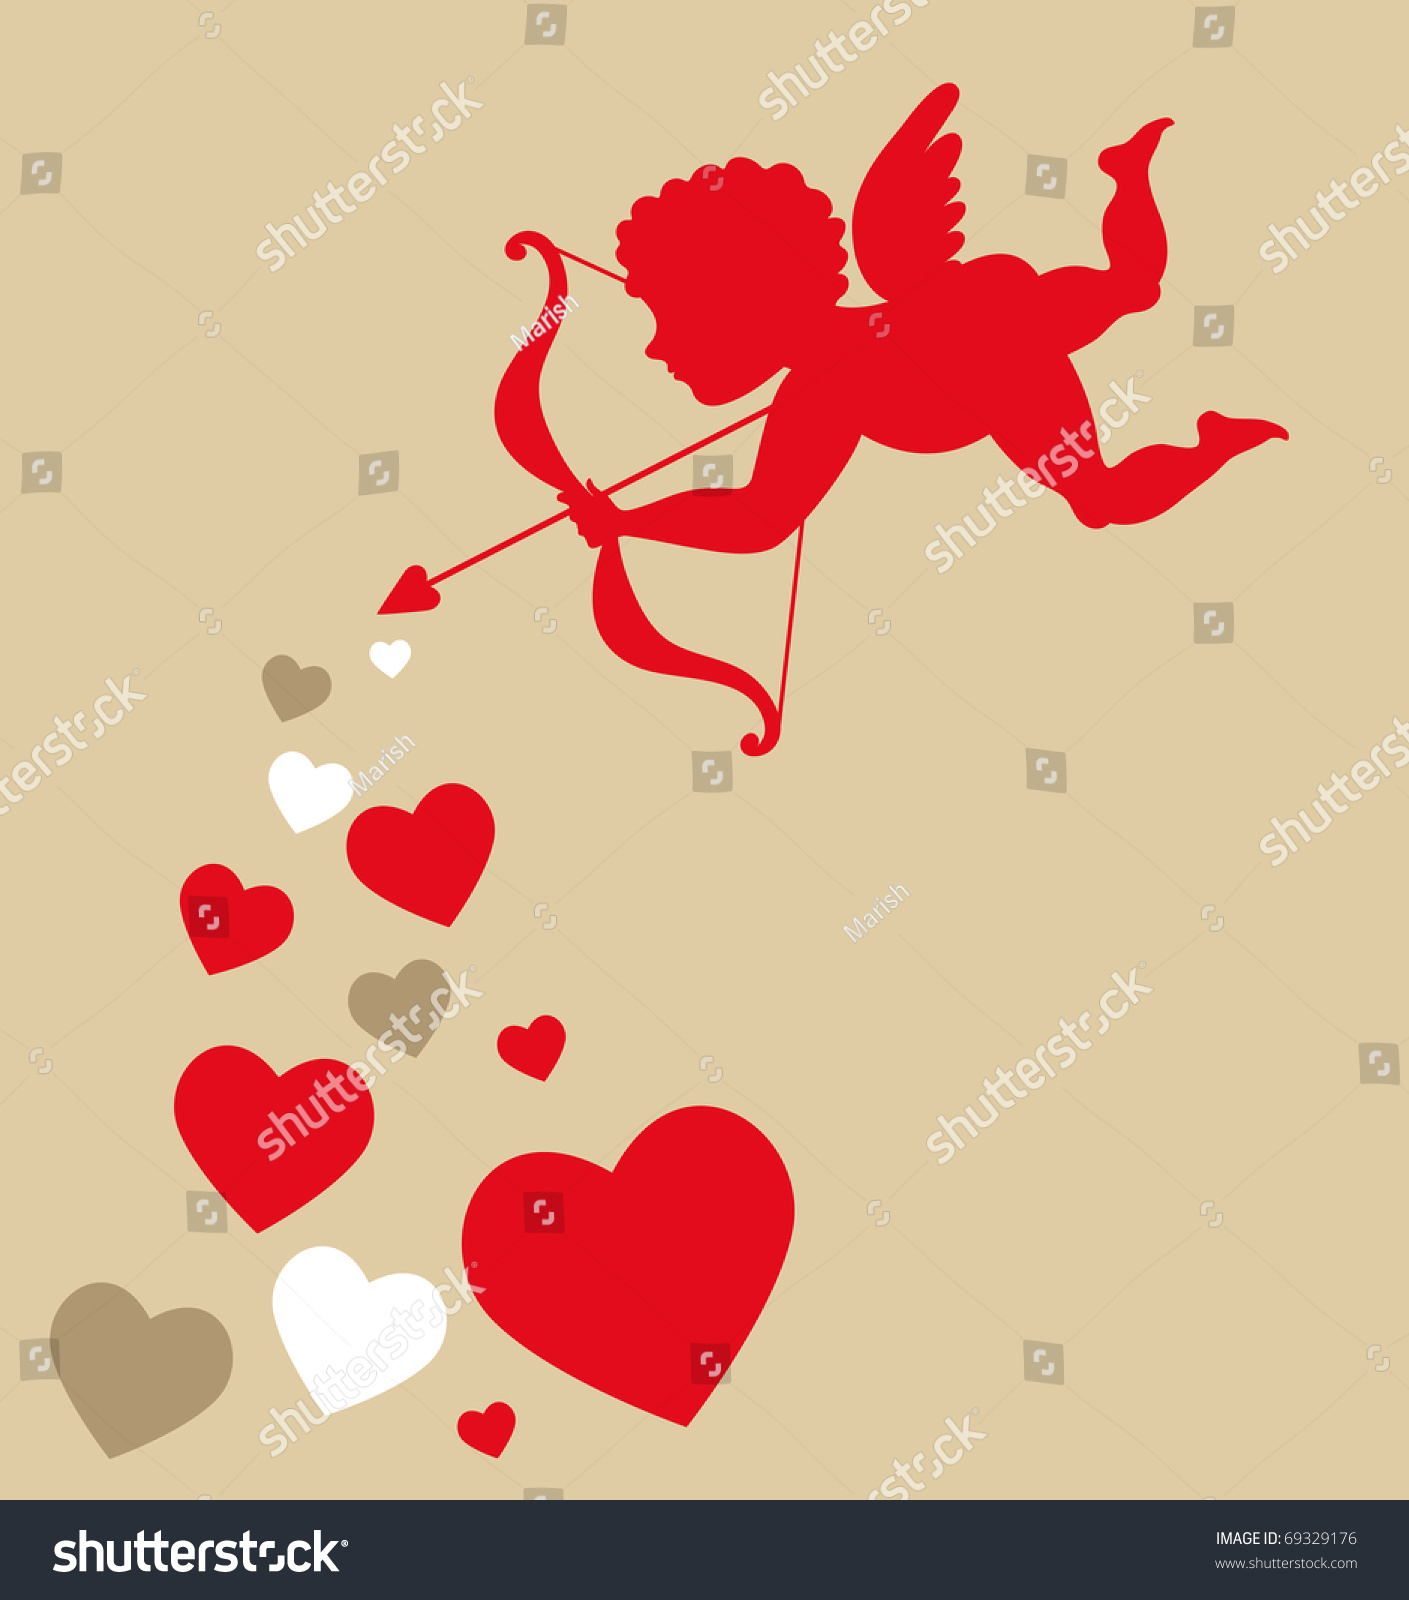 Cupid z dating site in Melbourne